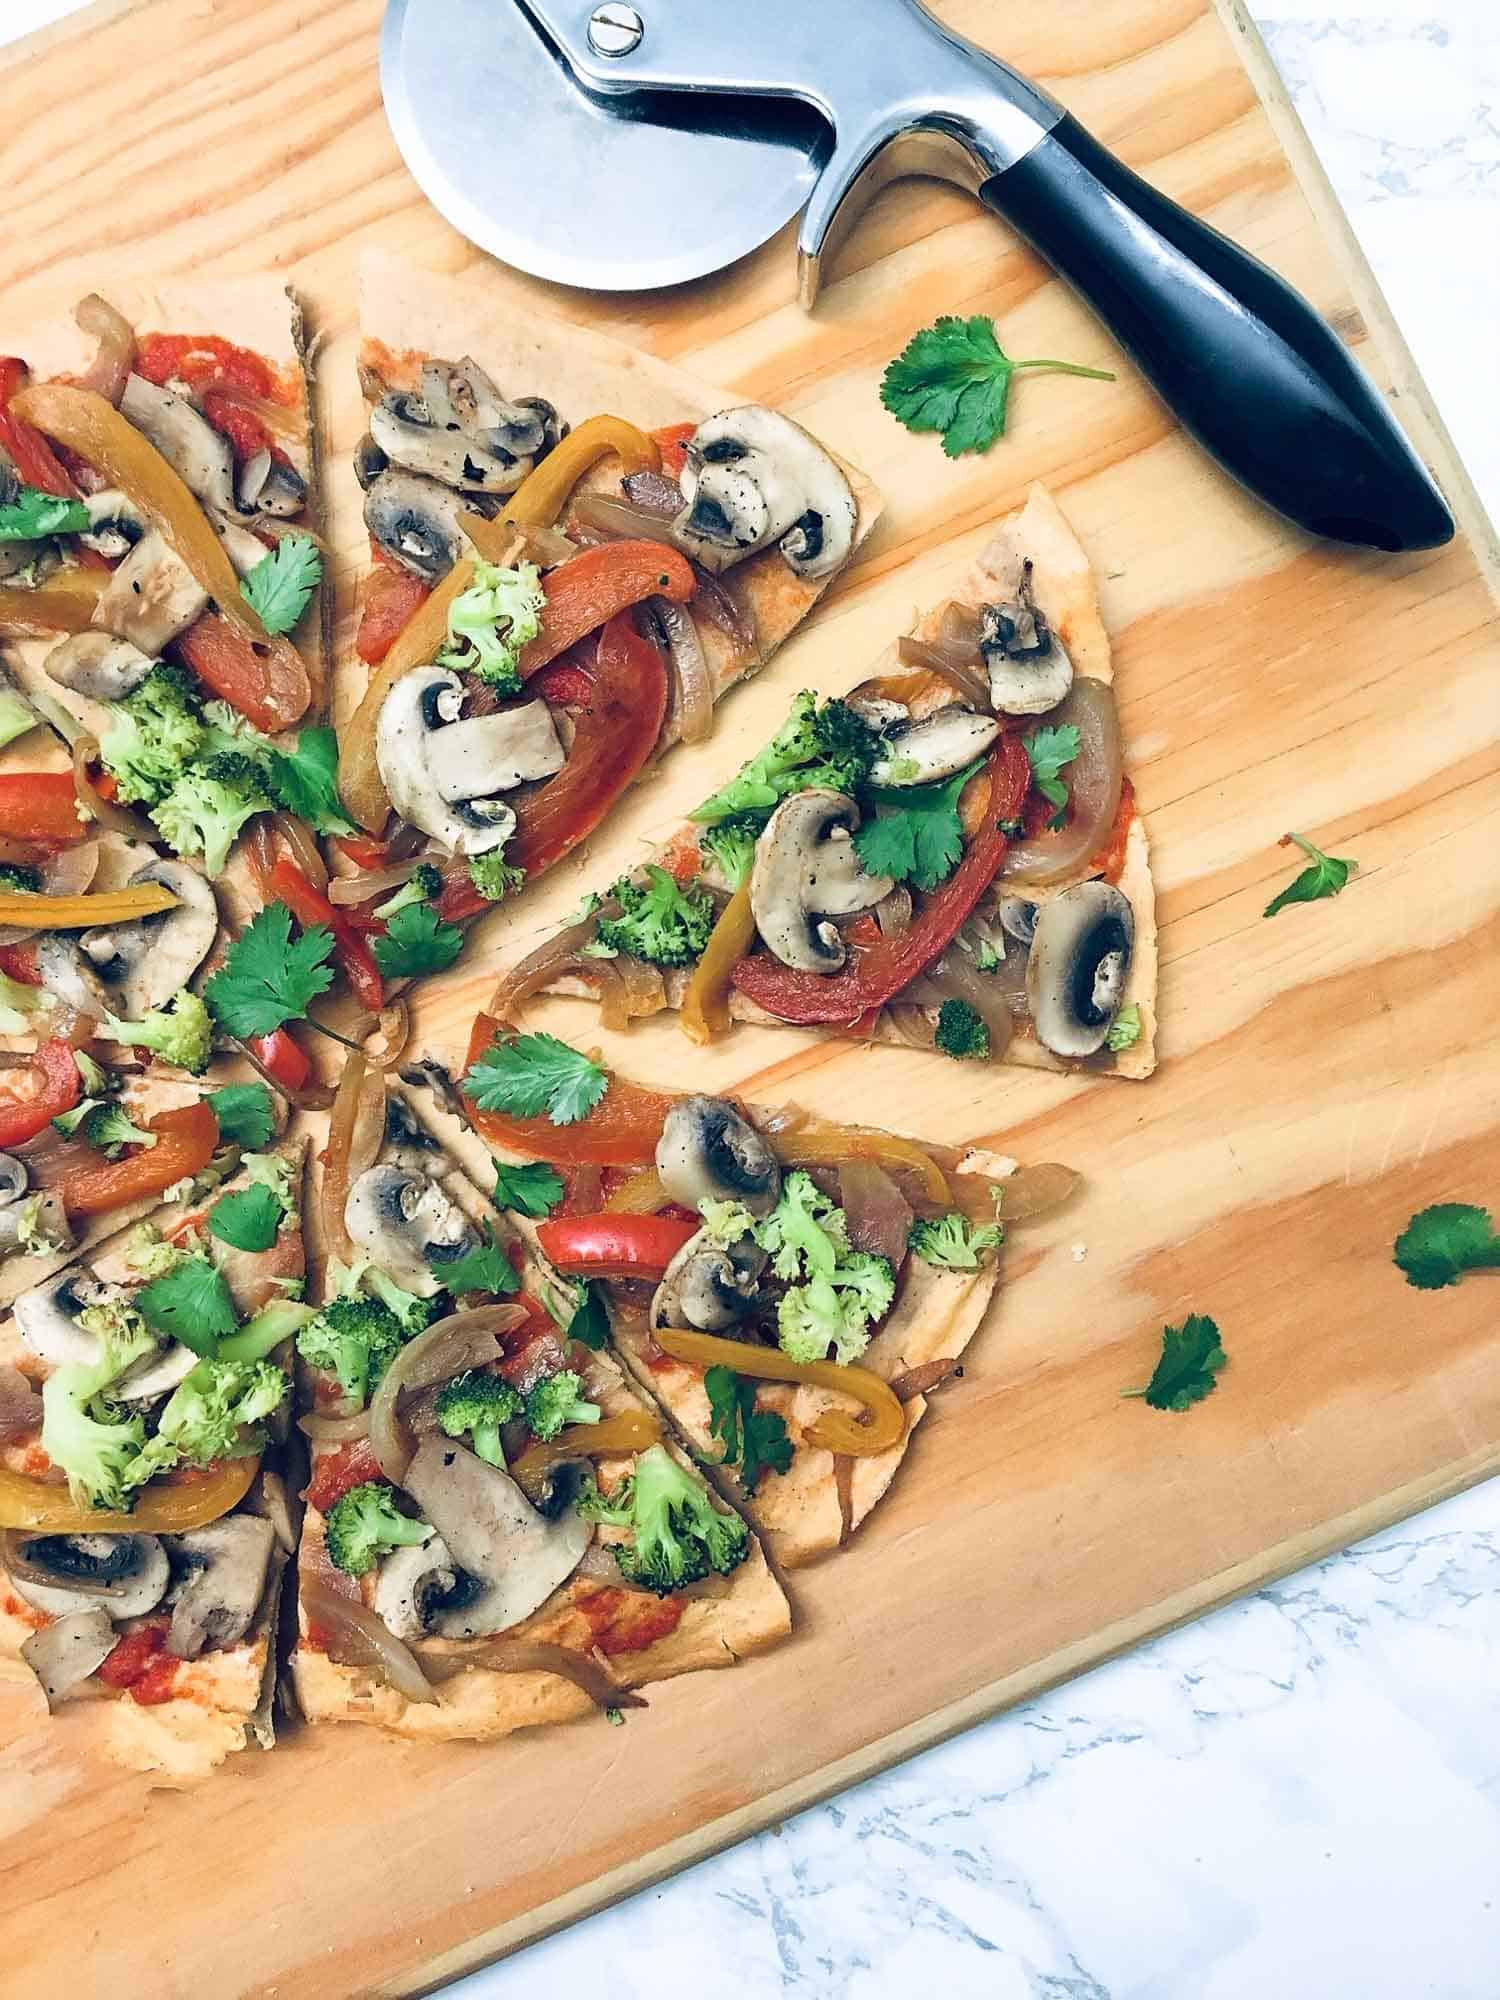 triangular slice of pizza pulled away from entire pizza on wooden cutting board